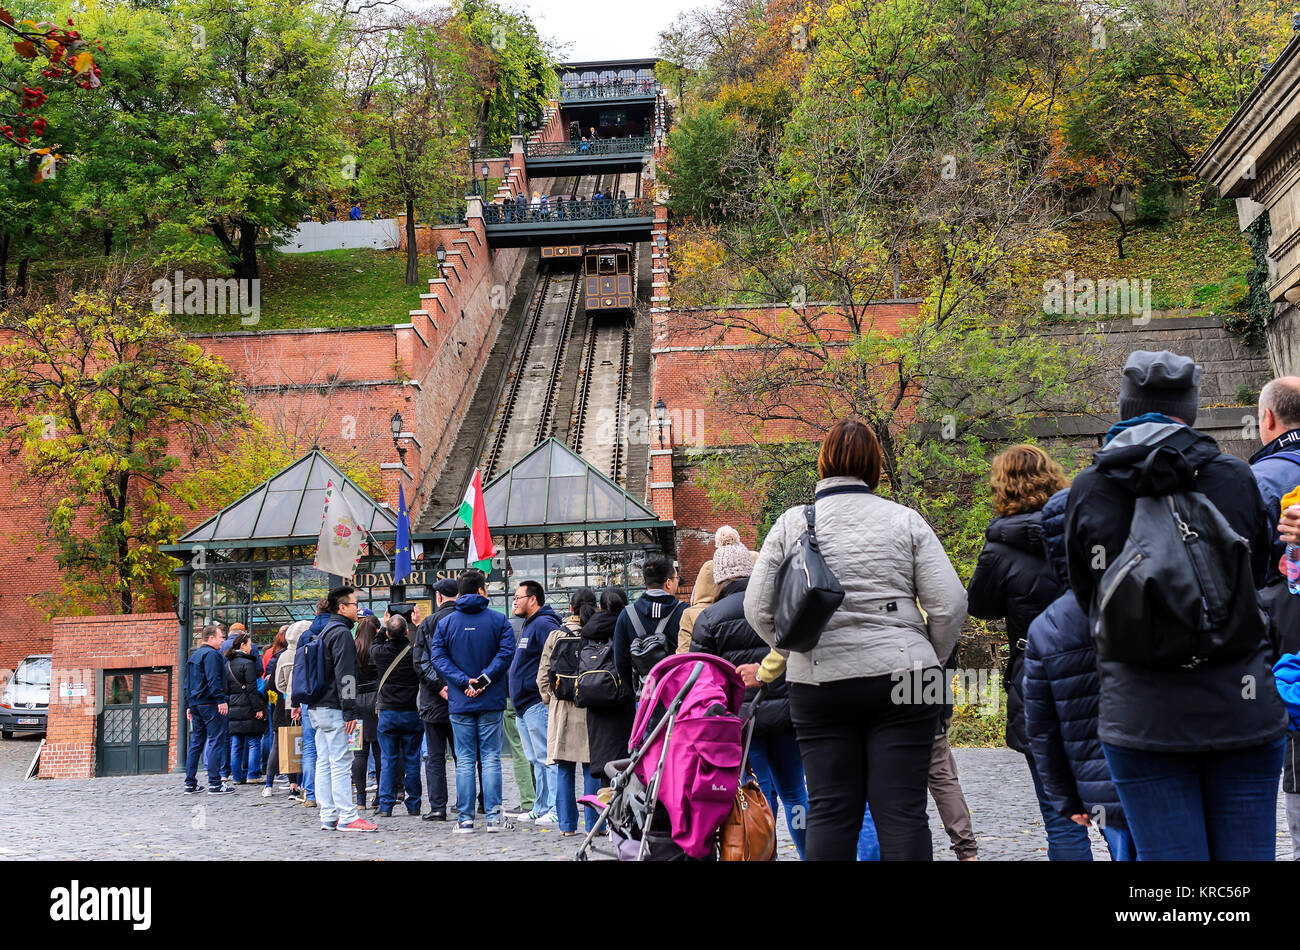 BUDAPEST, HUNGARY- 28 OCTOBER 2017: Tourists wait in line to buy tickets for the funicular. Budapest, Hungary. Stock Photo